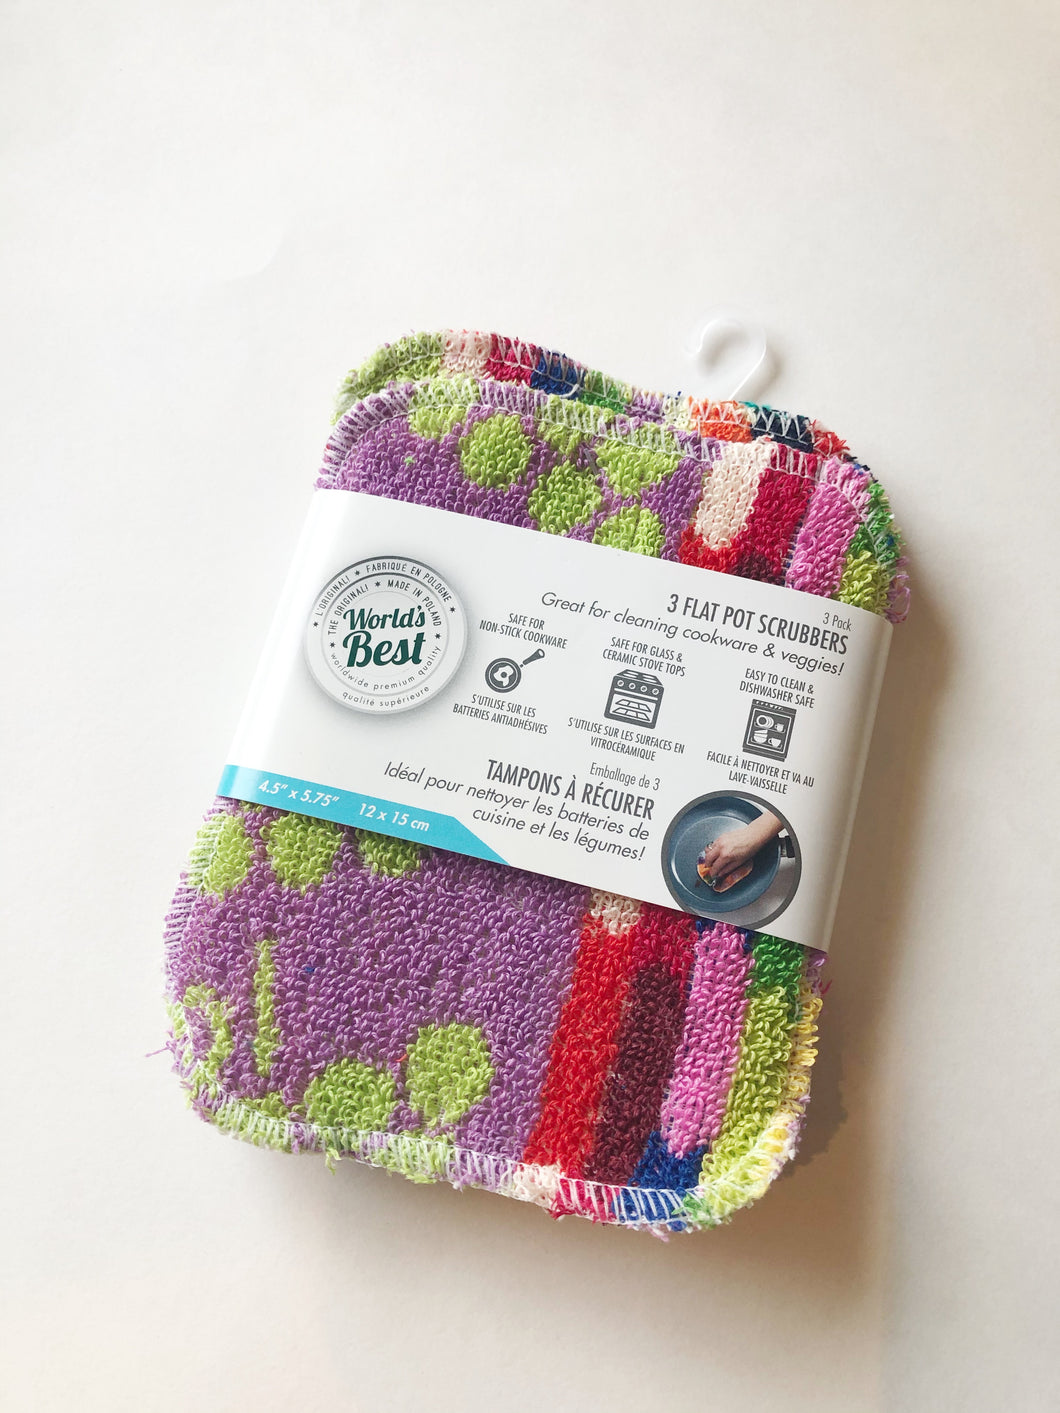 World's Best Pot Scrubbers (3 Flat)